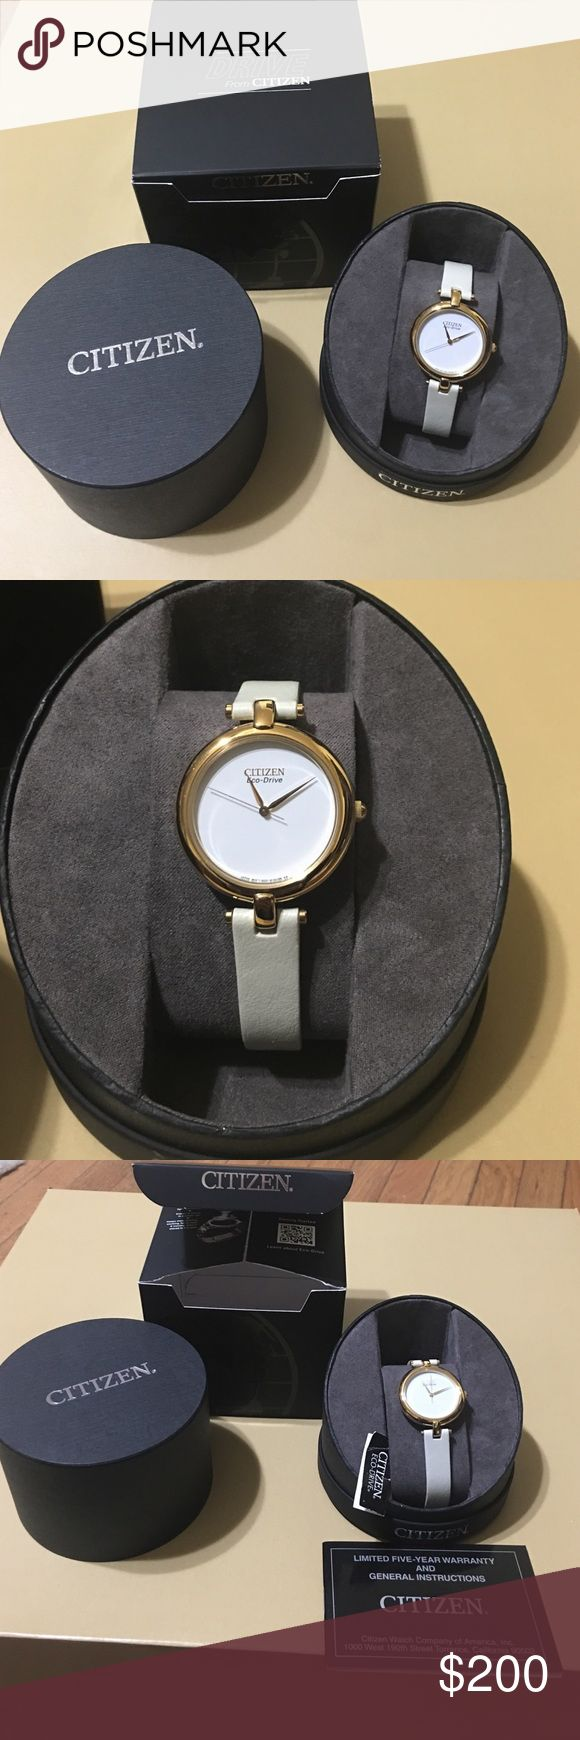 BNWT Citizen echo-Drive lady's watch. It starts with a simple, yet revolutionary concept: a watch that never needs a battery. Citizen Eco-Drive technology harnesses the power of light-from any natural or artificial light source-and converts it into energy. BEAUTIFUL BRAND NEW Gold with white face and gold hands eco-drive NEVER needs a battery. Brand new in perfect working order. Comes in box with instruction and warranty book. Citizen Accessories Watches